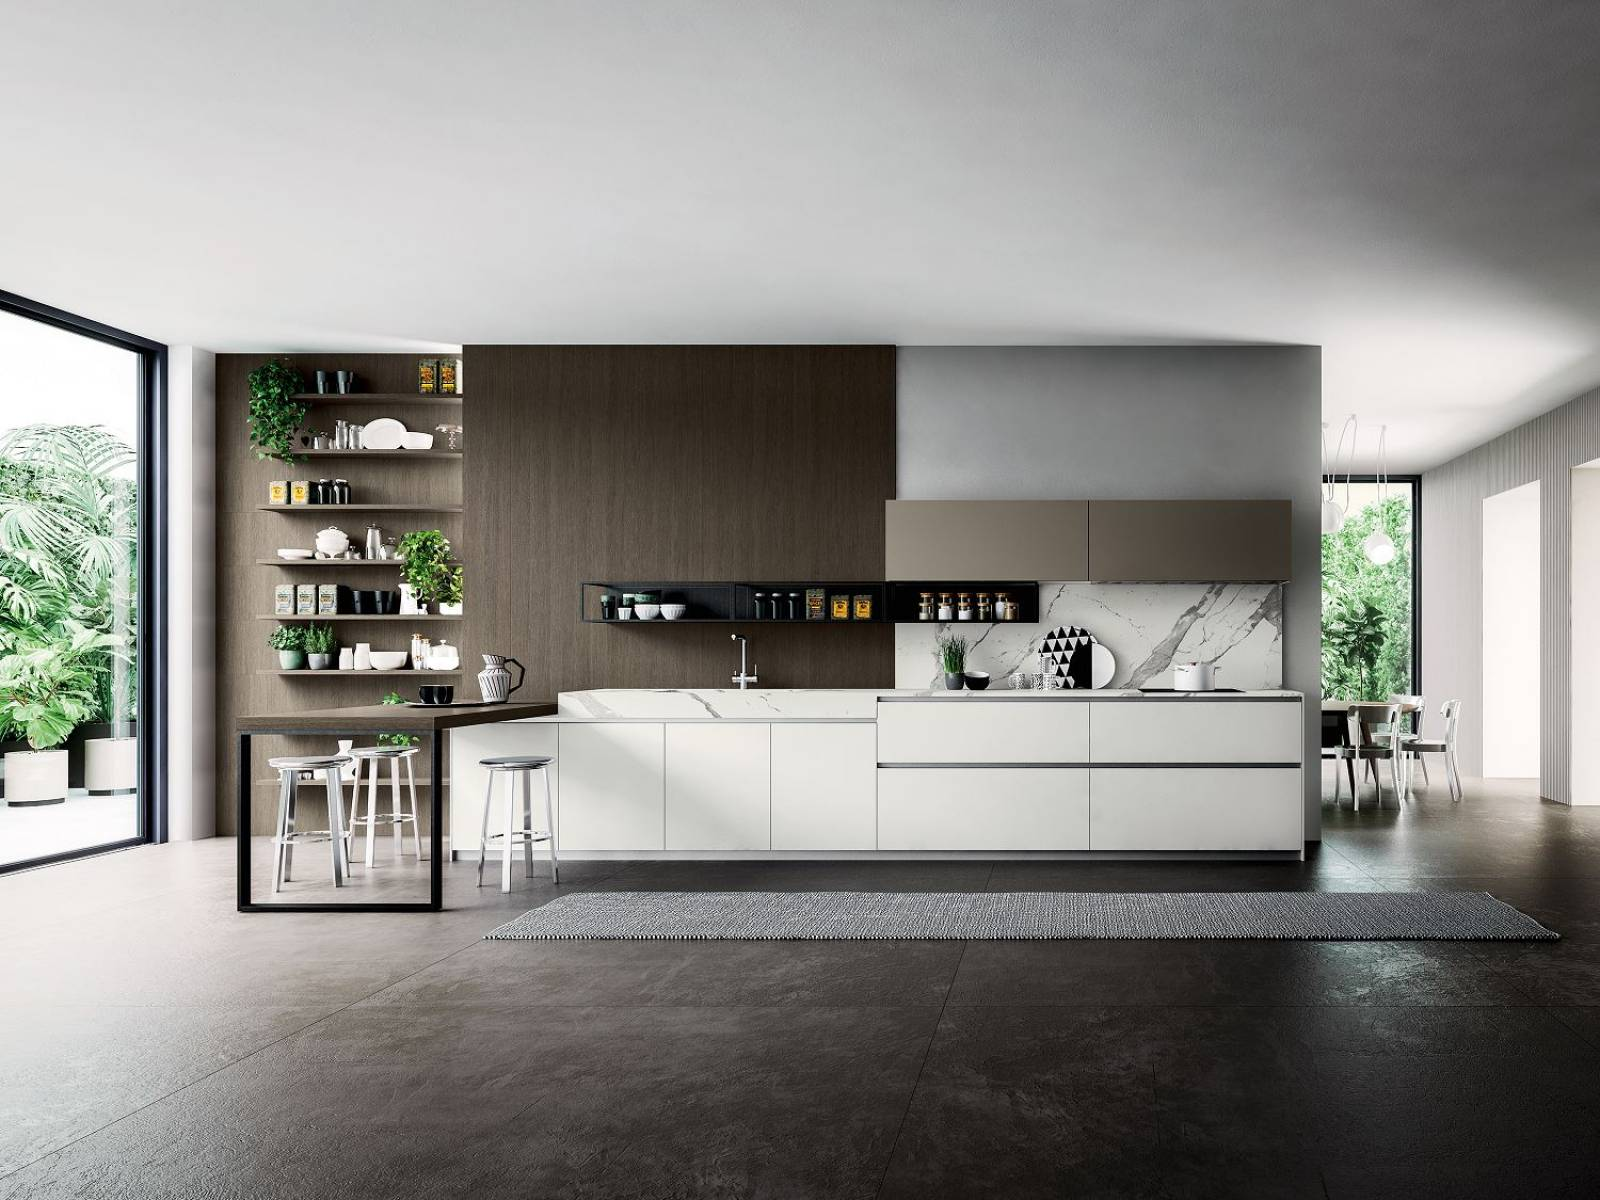 cuisine italienne verre tremp mat ou brillant design cuisines. Black Bedroom Furniture Sets. Home Design Ideas